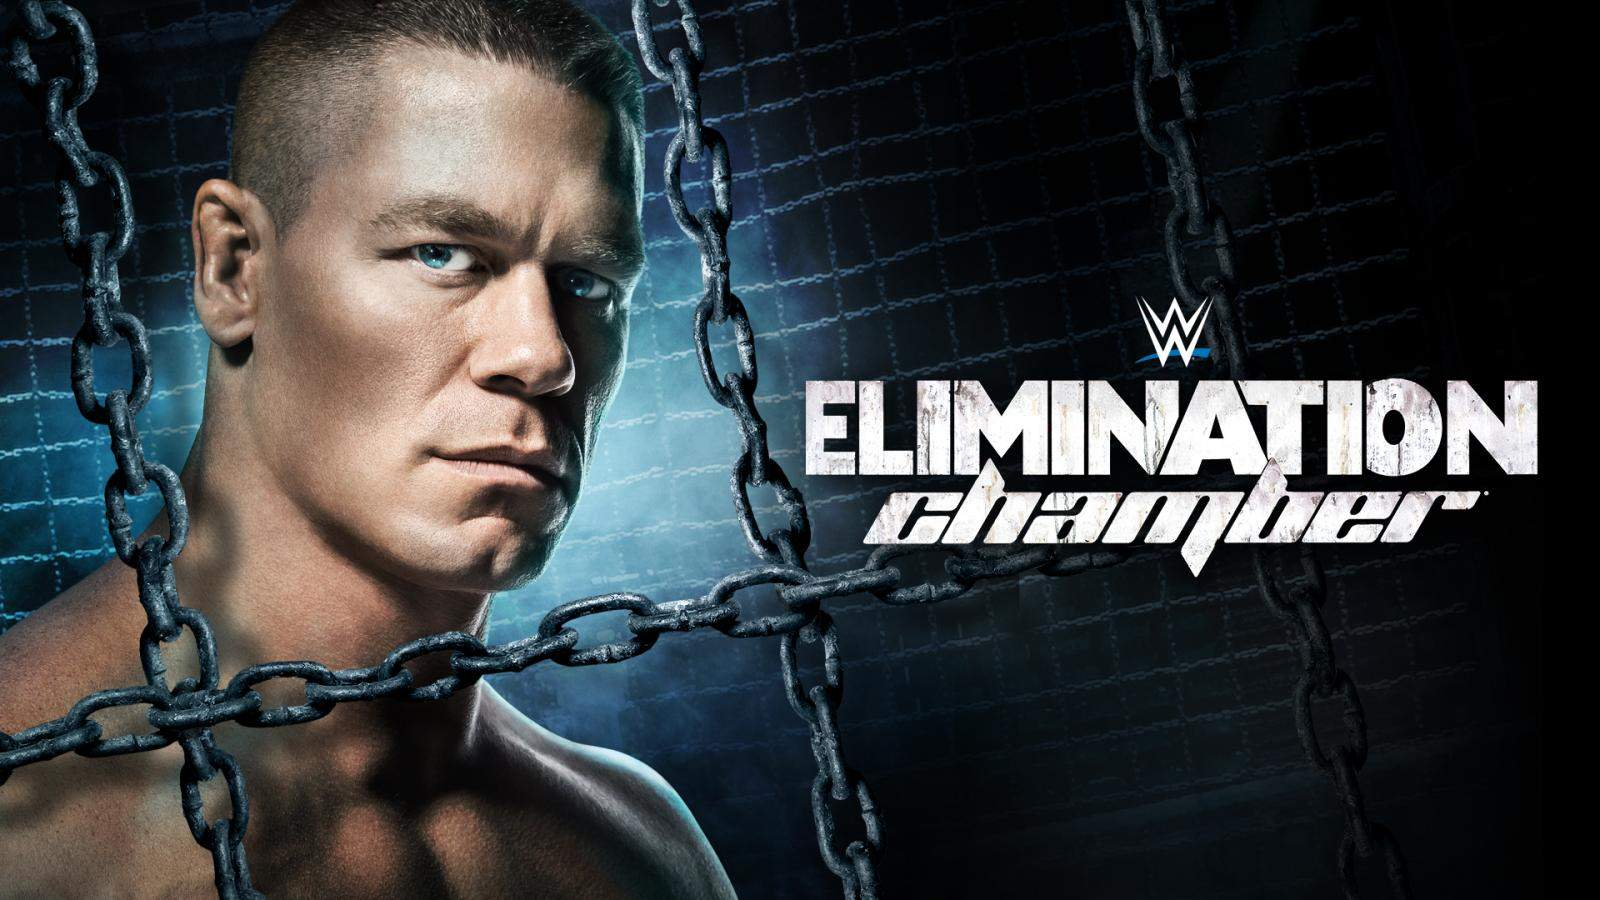 A Ras De Lona #133: WWE Elimination Chamber 2017